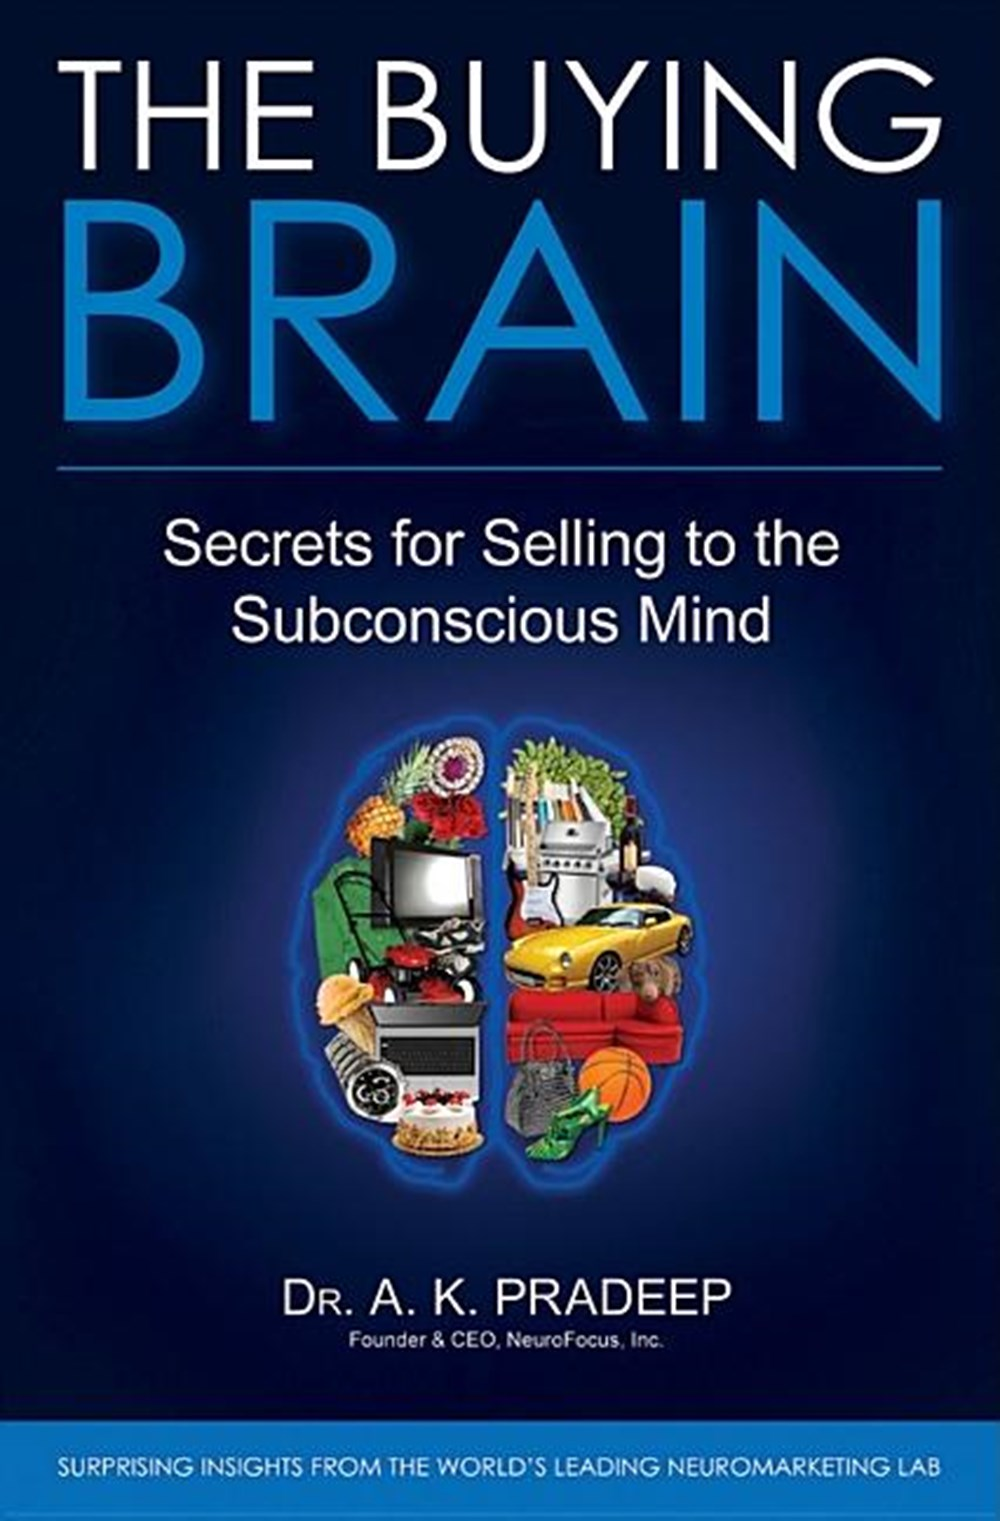 Buying Brain Secrets for Selling to the Subconscious Mind